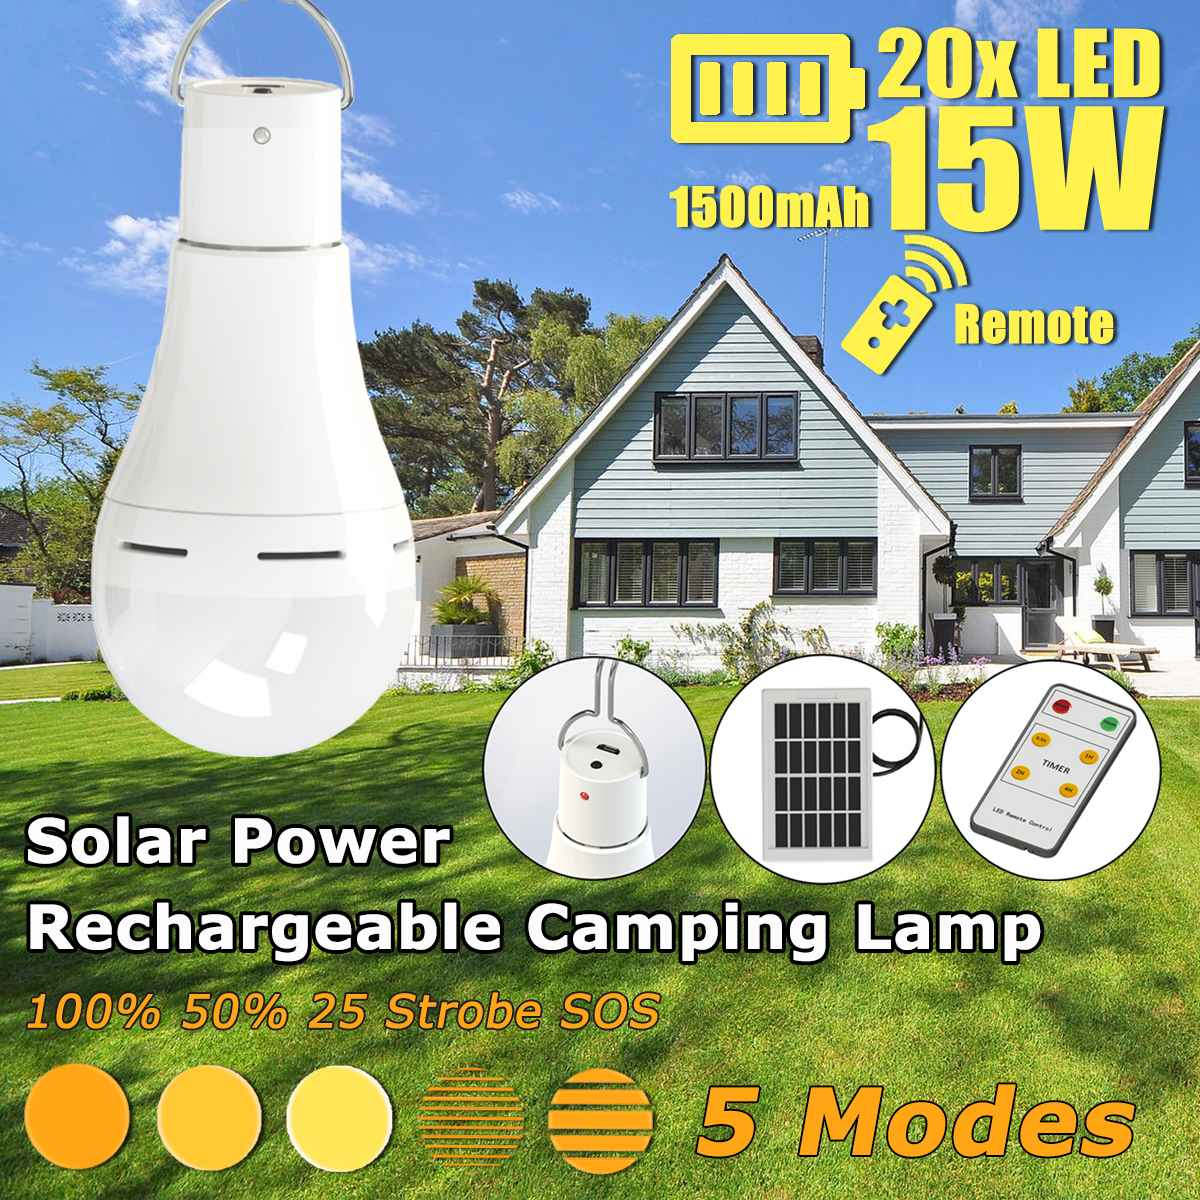 15W 20W Solar Power USB Rechargeable Camping Light Bulb 5-Modes W  Solar Panel 3 meters  Cable  amp  Remote Solar Lamps